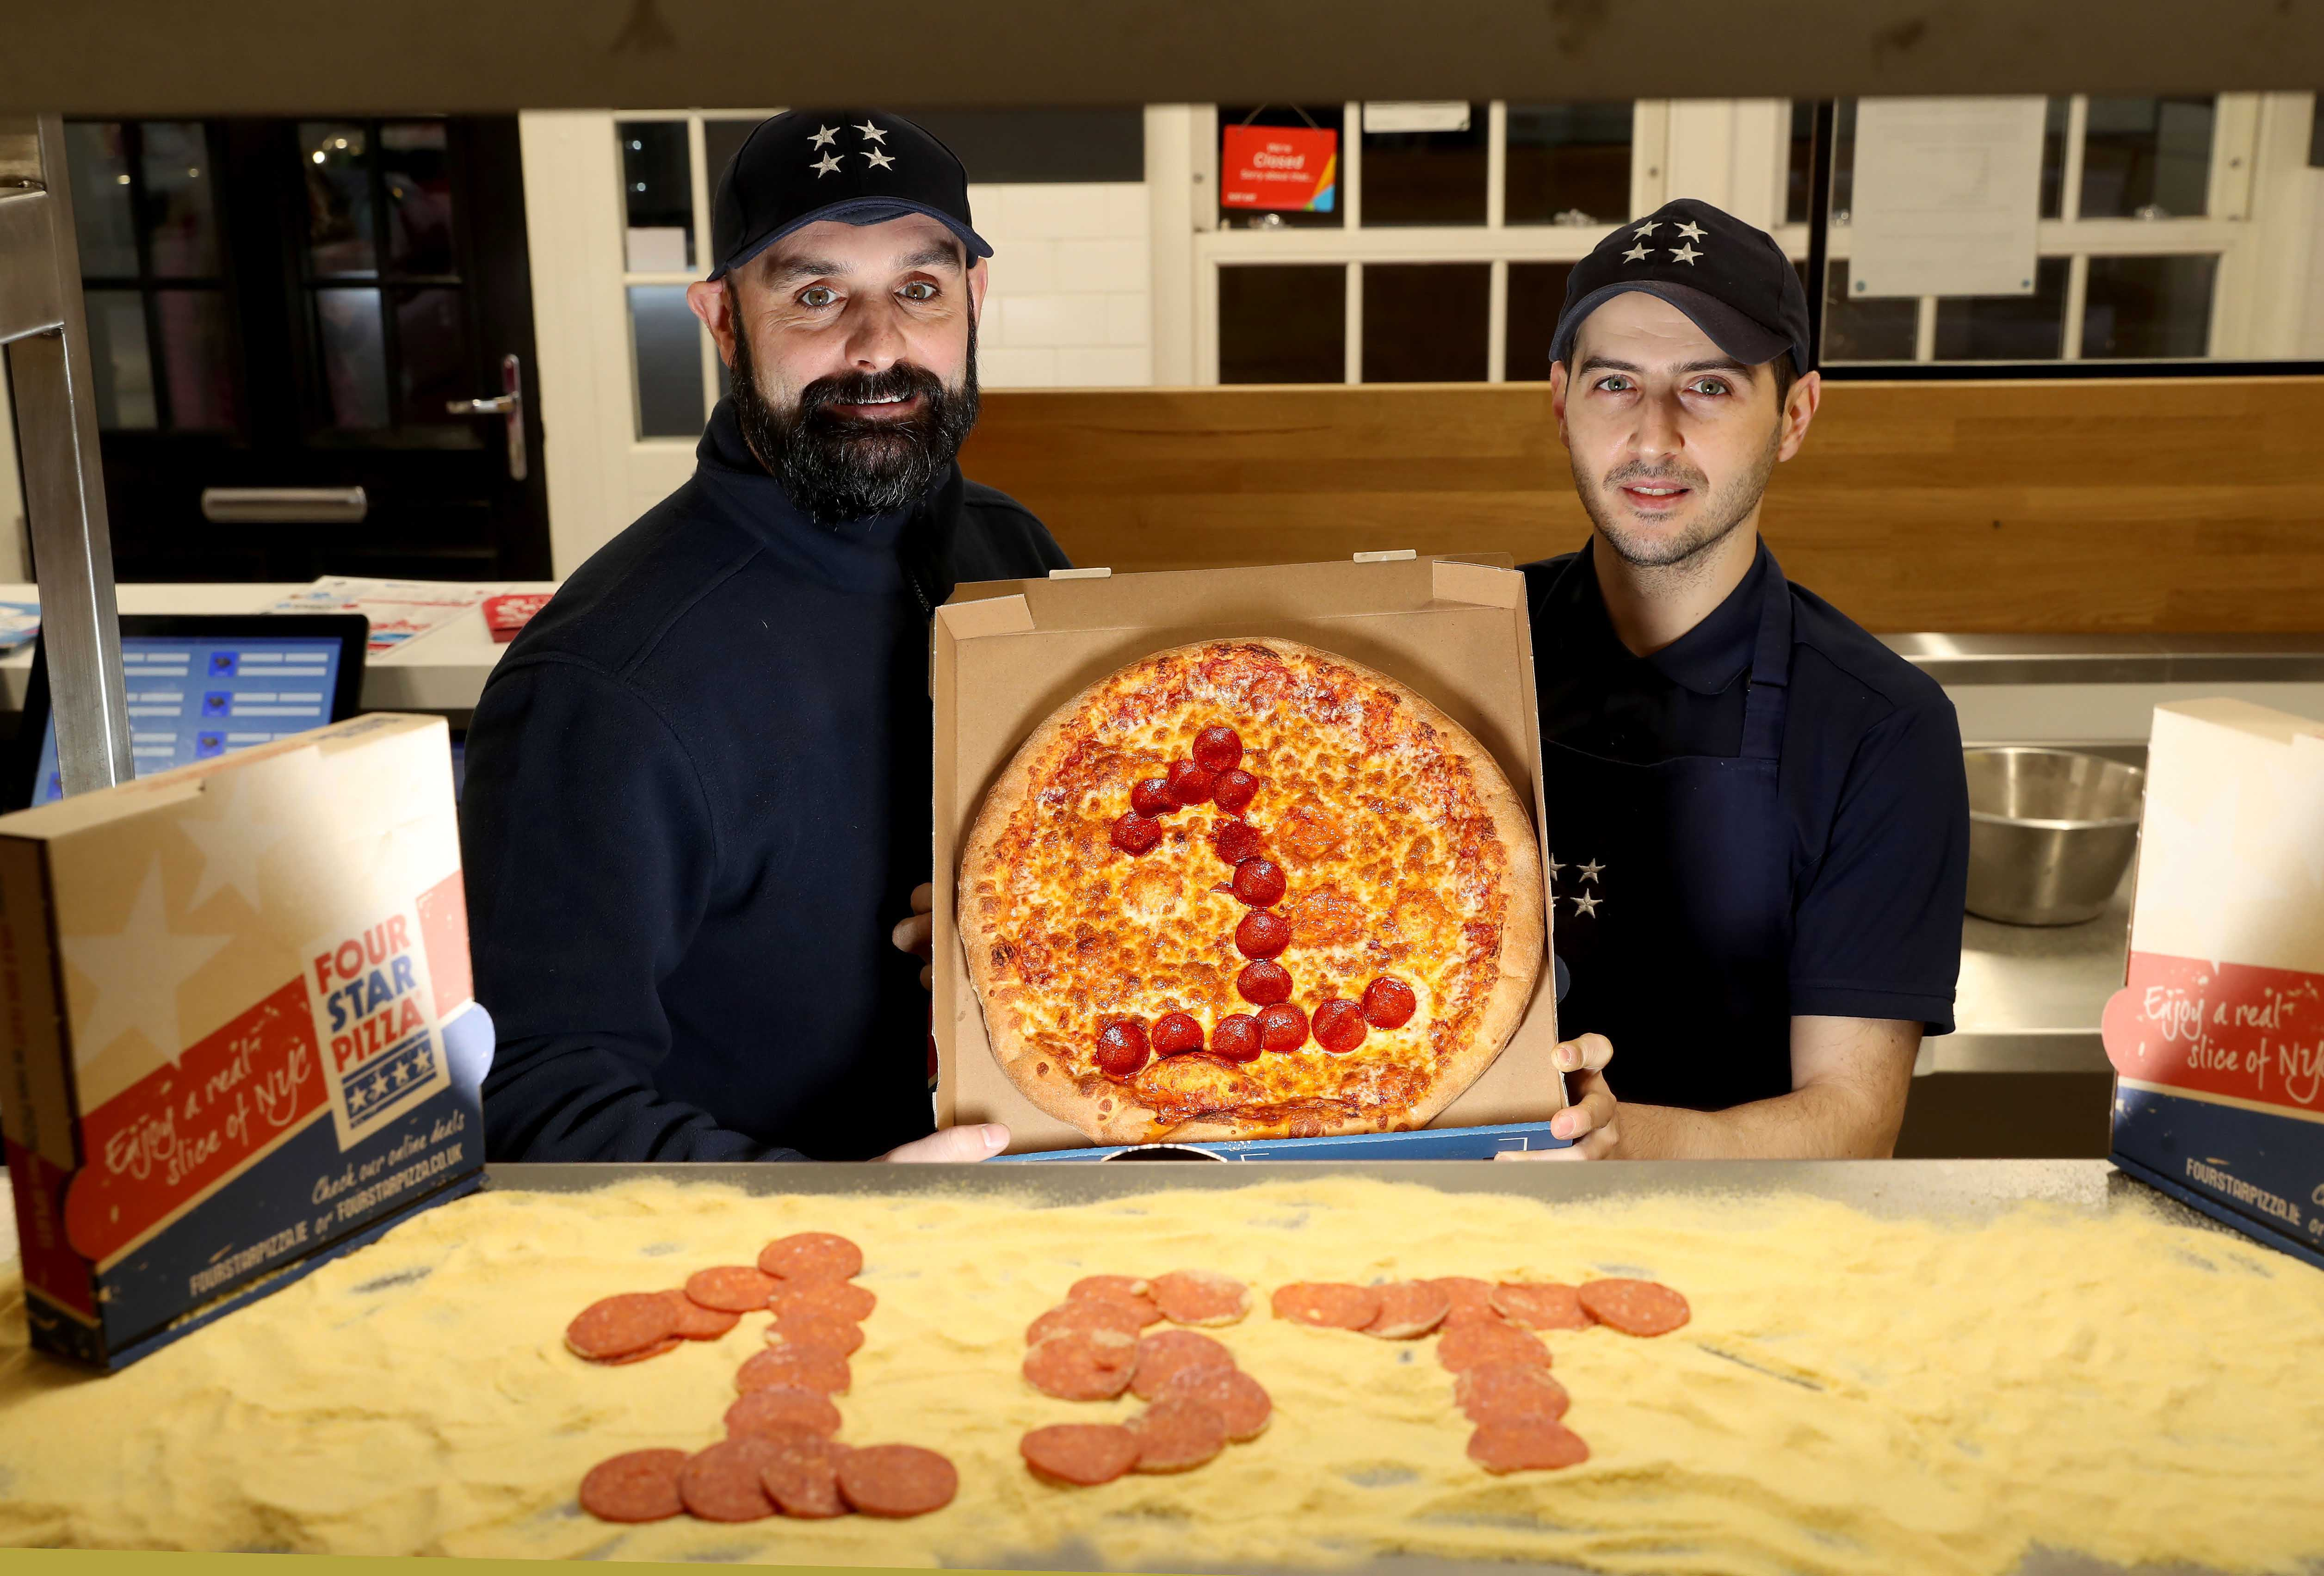 Scott Higginson (left) and Okan Turan of Four Star Pizza in Lisburn serve up a celebratory pizza to mark the store's first birthday. It's been a very successful year for the popular store which opened on the Nettlehill Road in December last year, creating 25 jobs in a £150,000 investment by the Irish-owned pizza chain. Since then, it has delivered no fewer than 82,000 fresh pizzas to homes in the Lisburn area, using OVER ONE MILLION pepperoni slices, 10 TONNES of cheese and 17 TONNES of flour. So successful has the Lisburn store been that, from January 1, 2020, it will be opening from 12 noon every day to meet the lunchtime demand. Four Star Pizza was established in 1988, and operates 57 stores across the island of Ireland, including 13 in Northern Ireland. It is renowned for its pizza dough which is freshly prepared by hand on site daily by passionate and expertly trained pizza chefs, using top quality locally sourced flour. For more information go to https://fourstarpizza.co.uk/